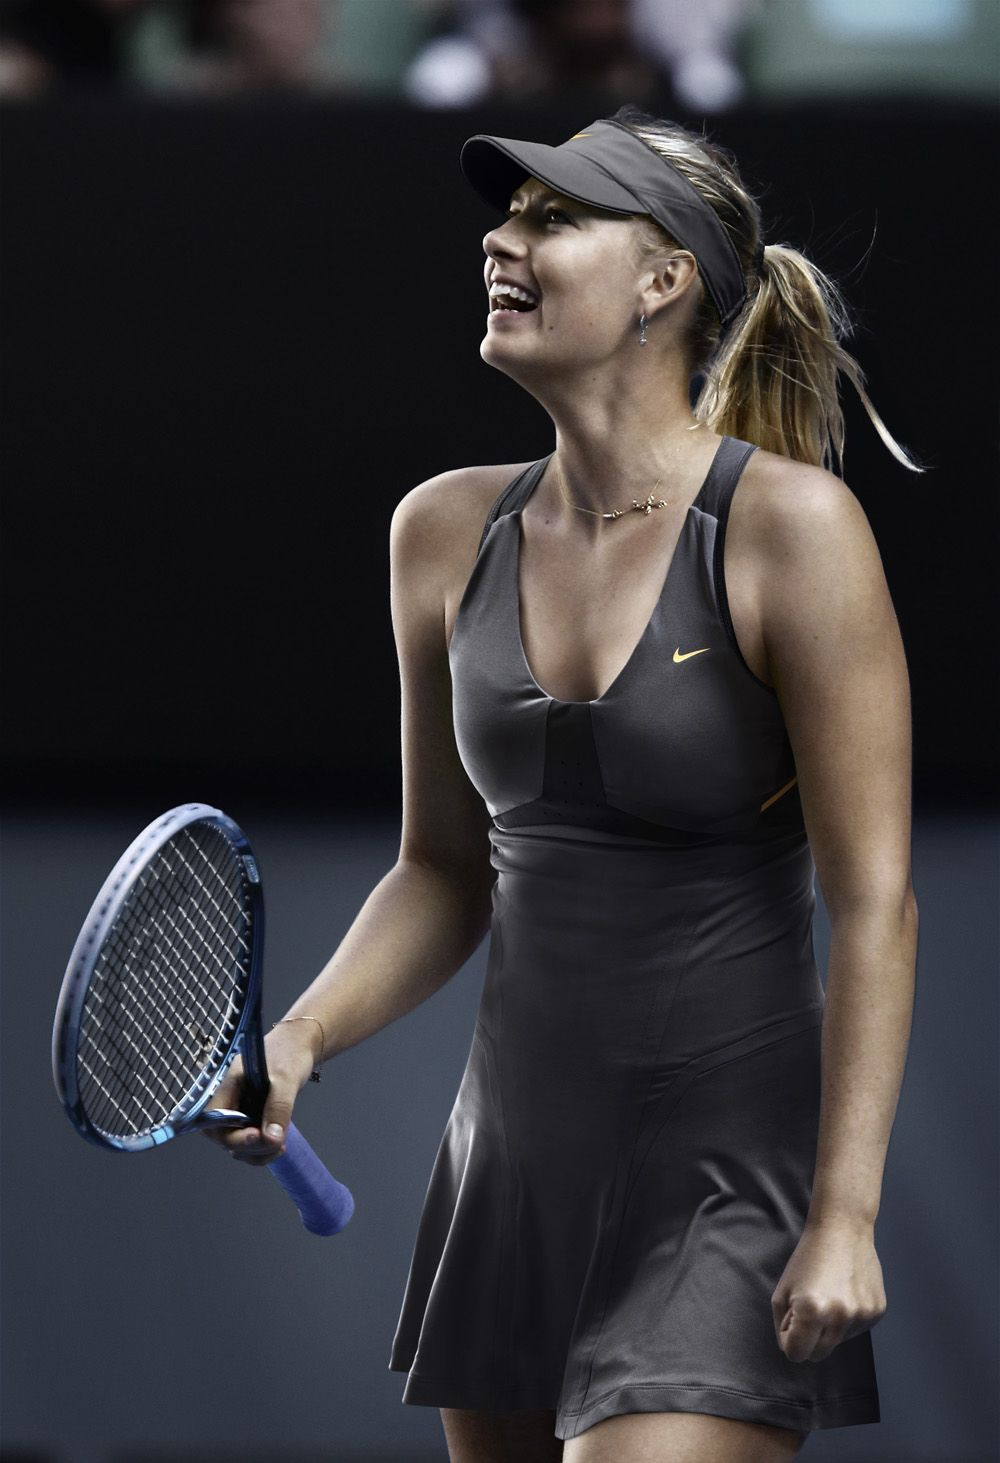 Nike Tennis 2012 US Open Collection Maria Sharapova - Outfit swap and retouching by Splash ...